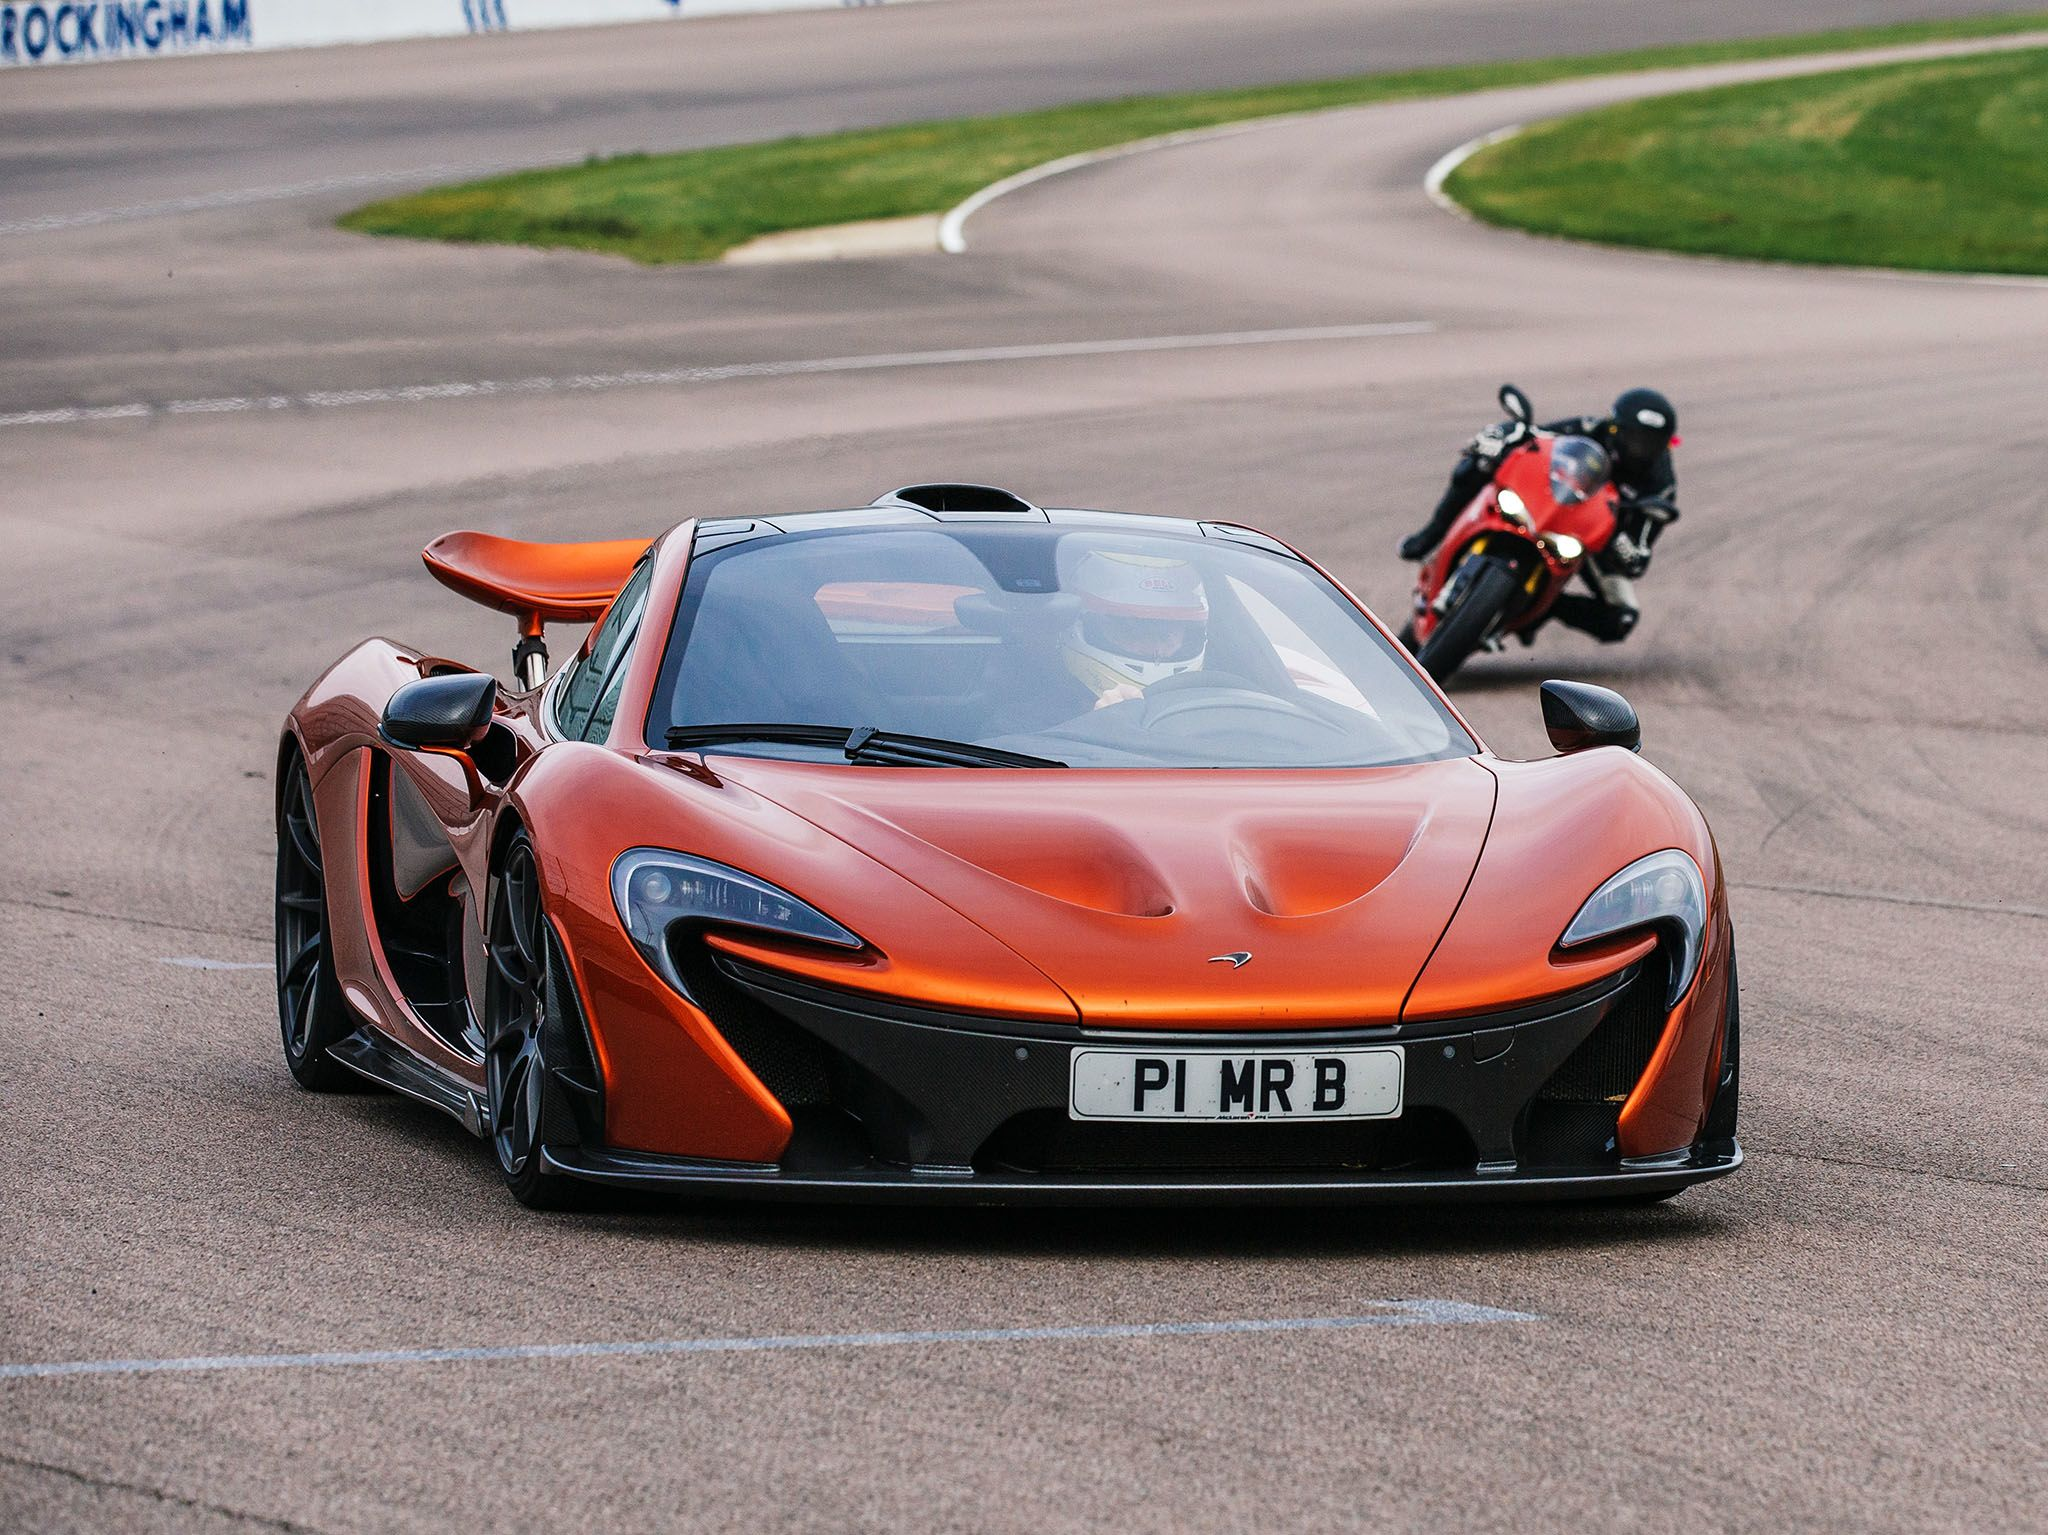 Leicester, UK: P1 and  Bike on the track at the Rockingham Motor Speedway. This image is from... [Photo of the day - May 2017]